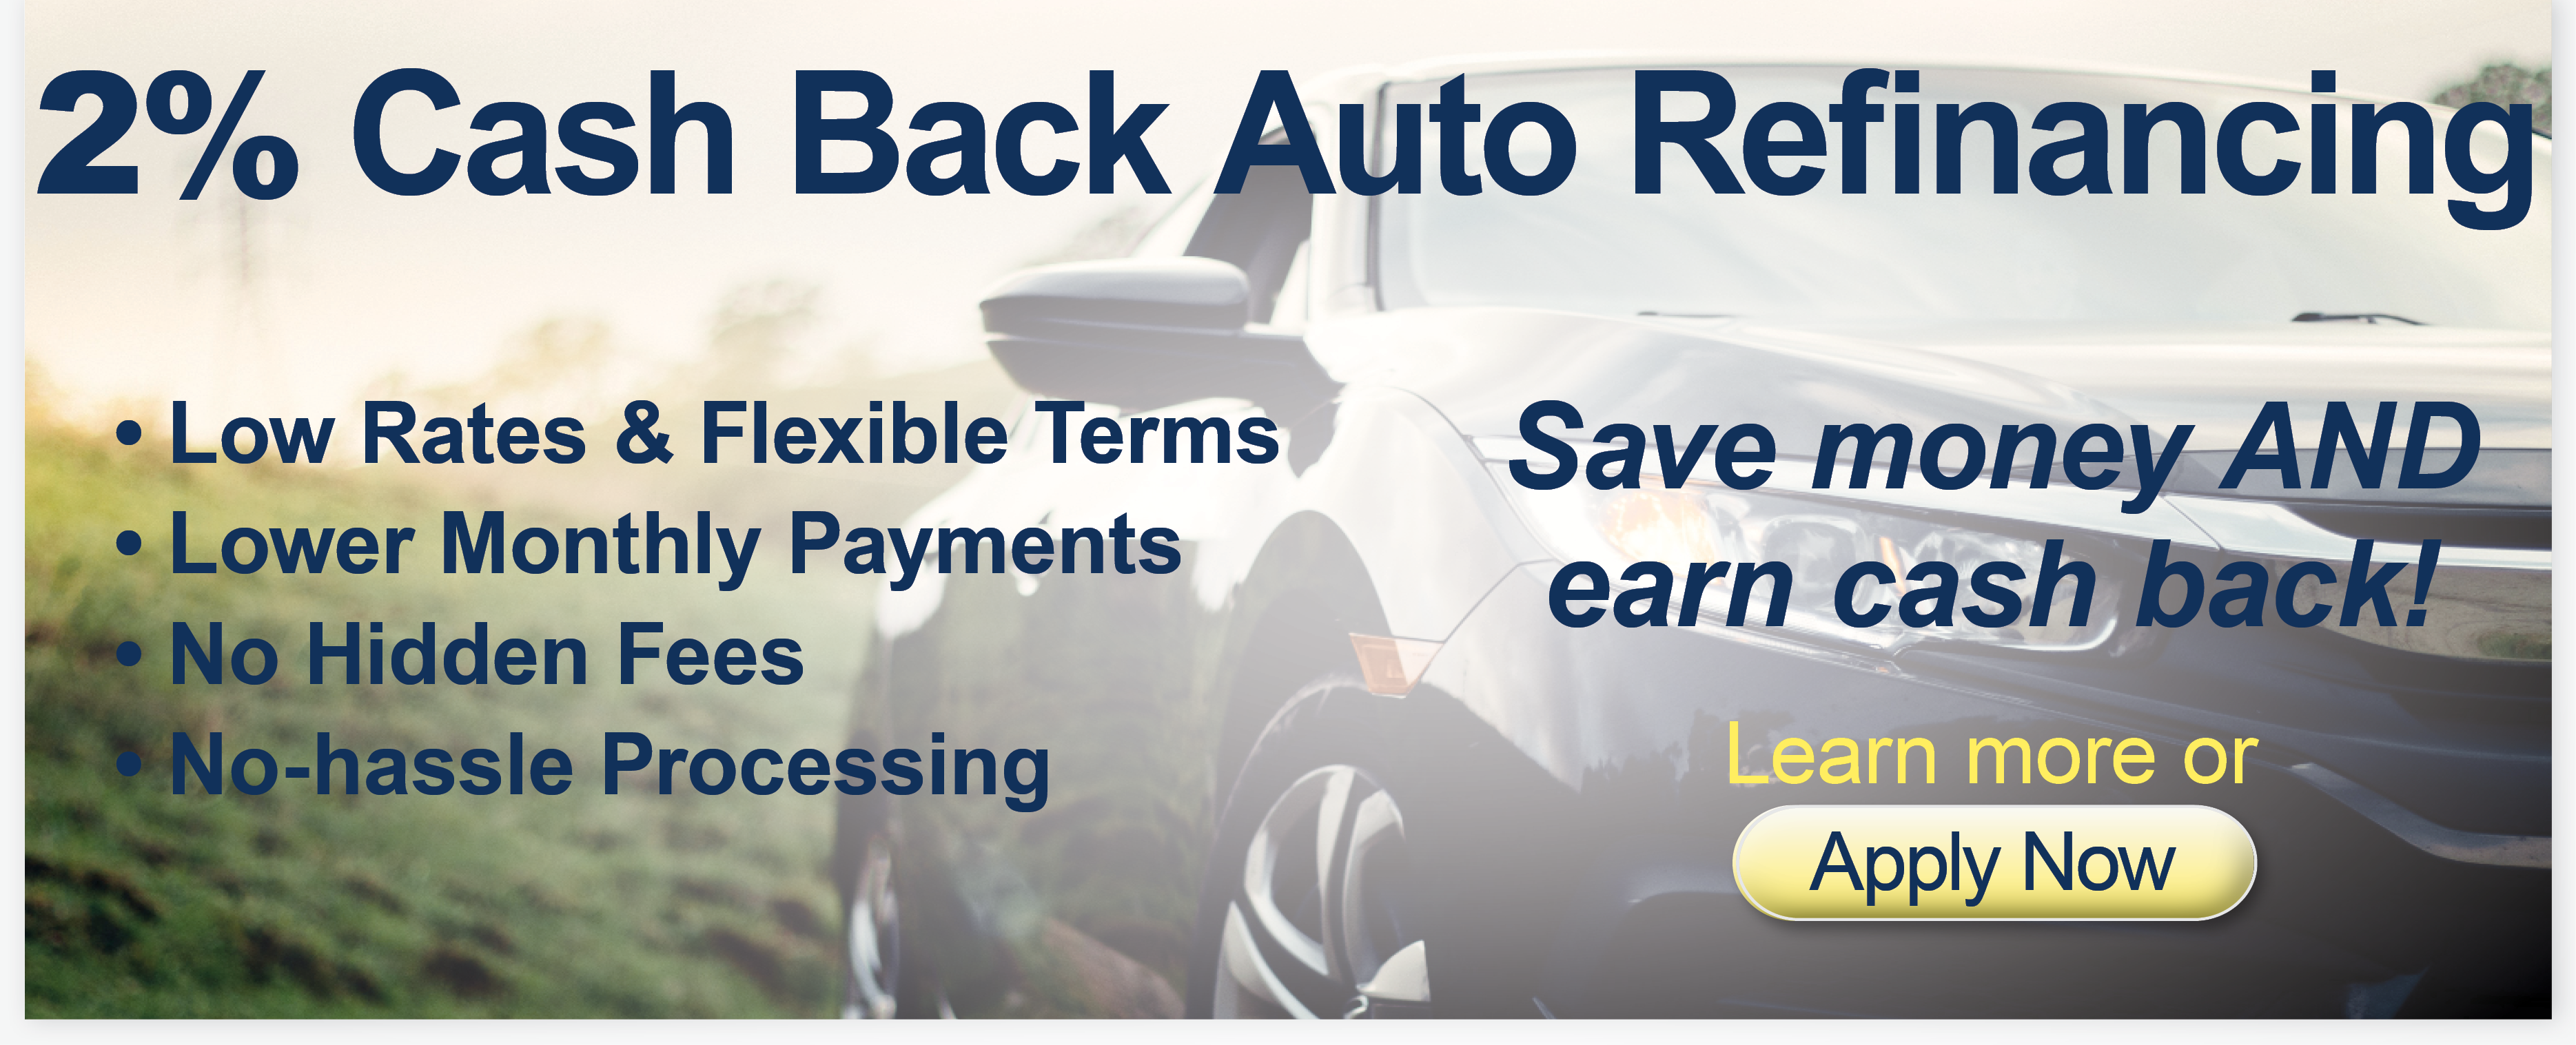 2% Cash Back Auto Financing